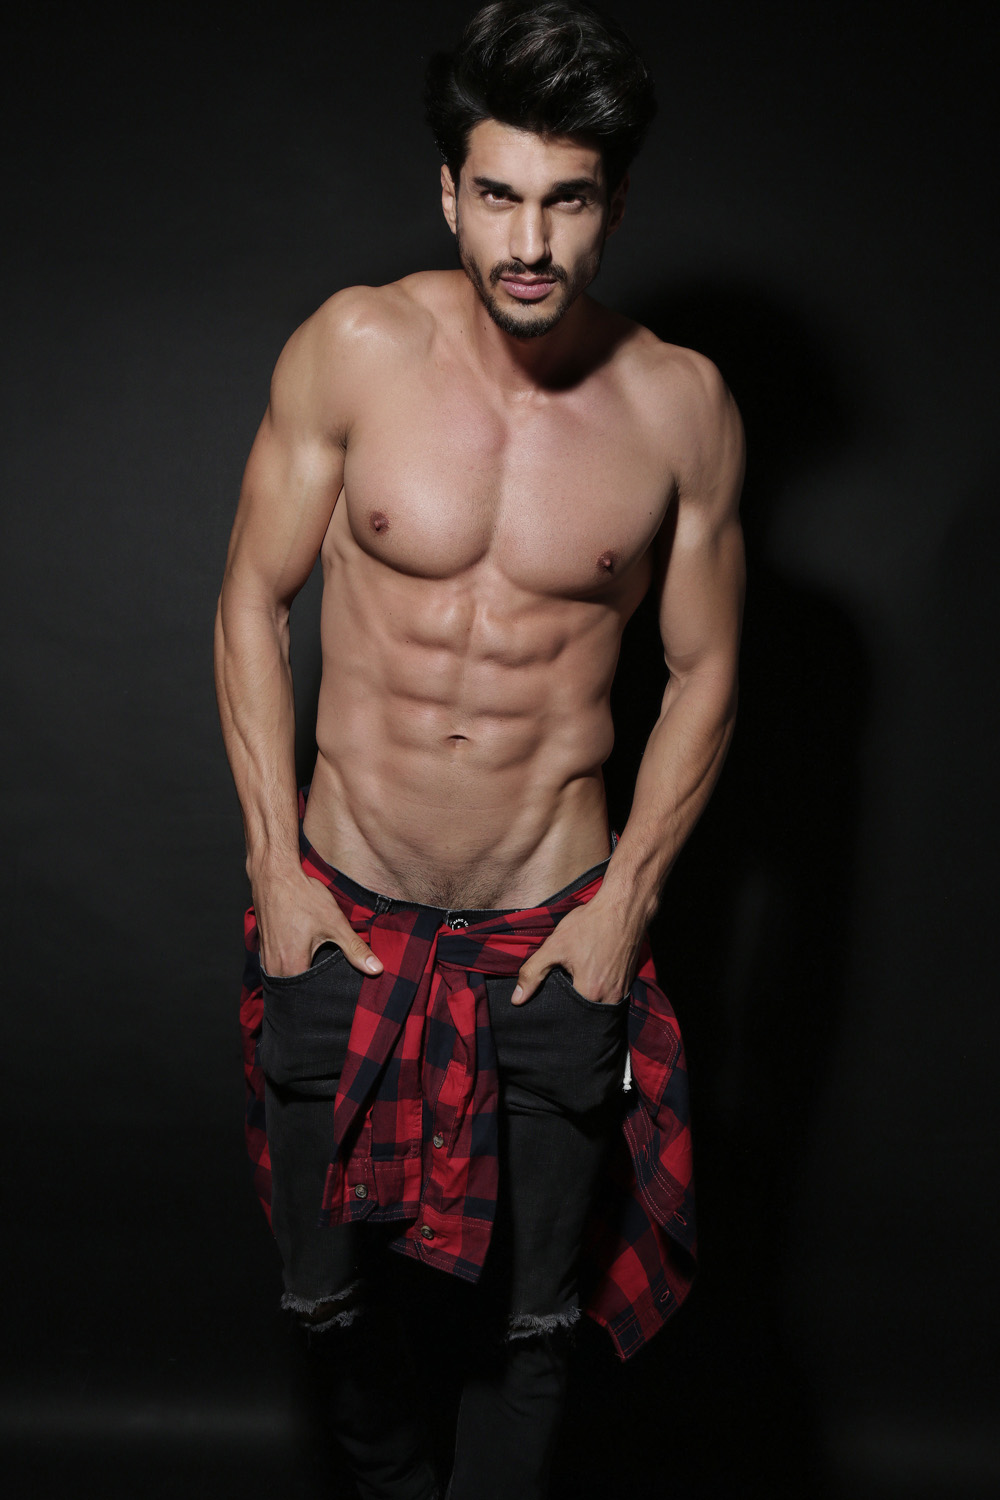 Let's get into Weekend's Mood: Diego Garcy by Afif Kattan